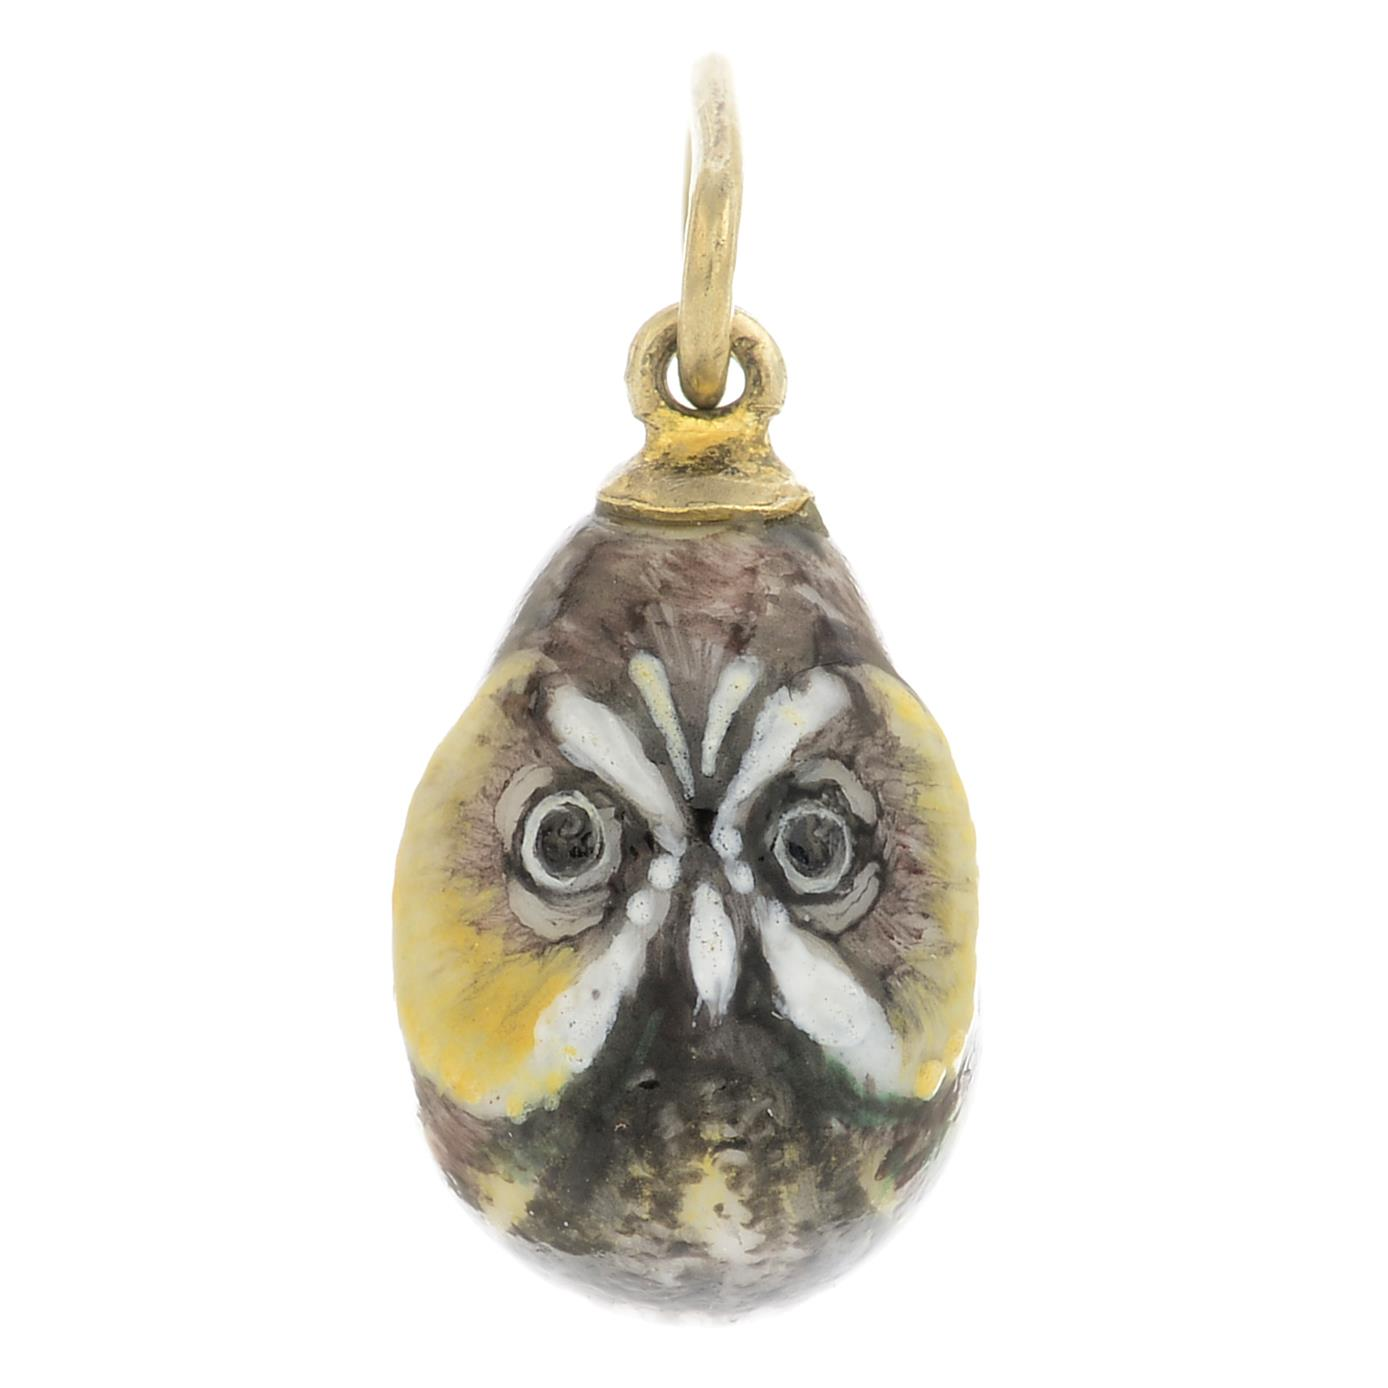 Lot 5 - An early 20th century enamel egg pendant, painted to depict an owl.Length 2.3cms.